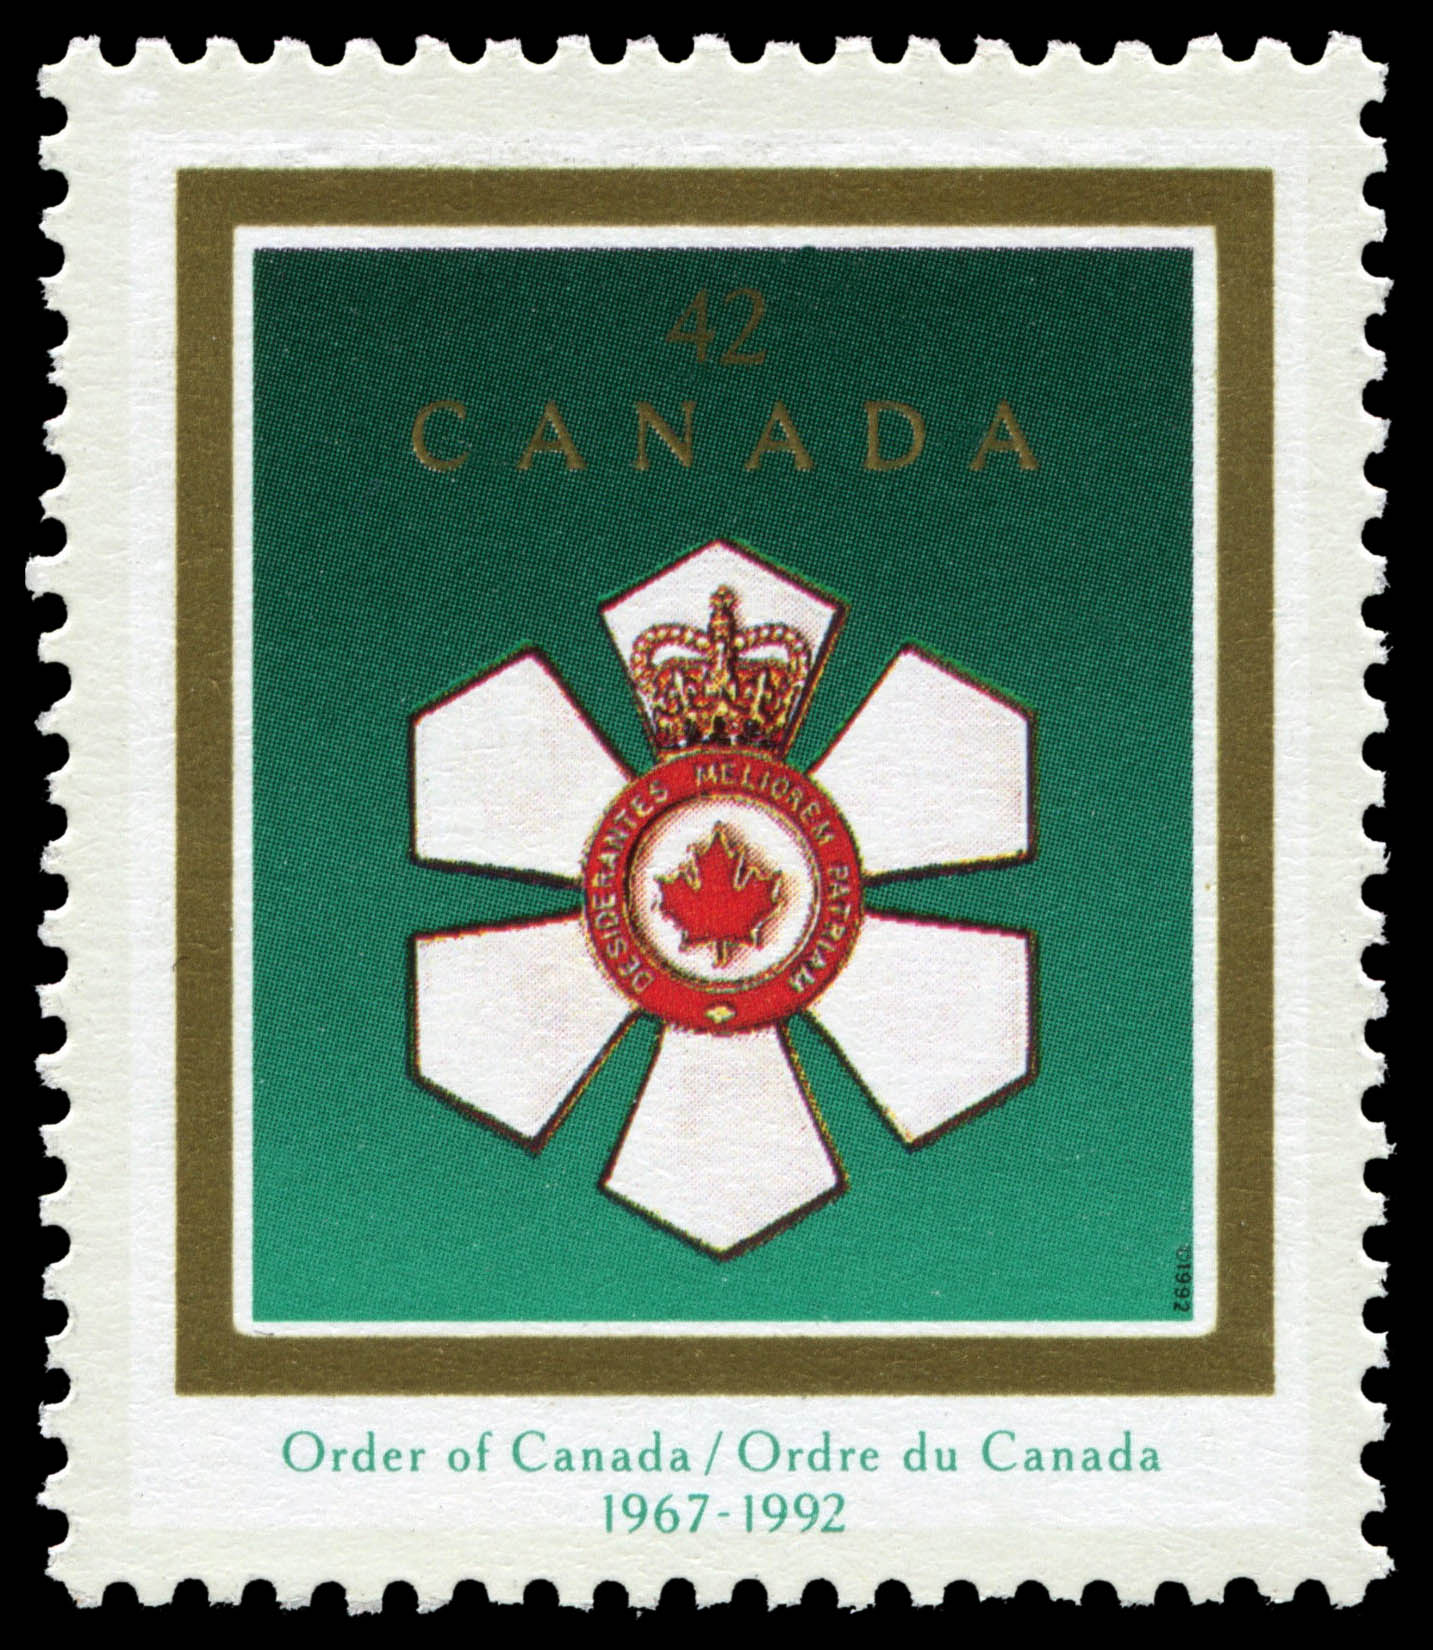 Order of Canada, 1967-1992 Canada Postage Stamp